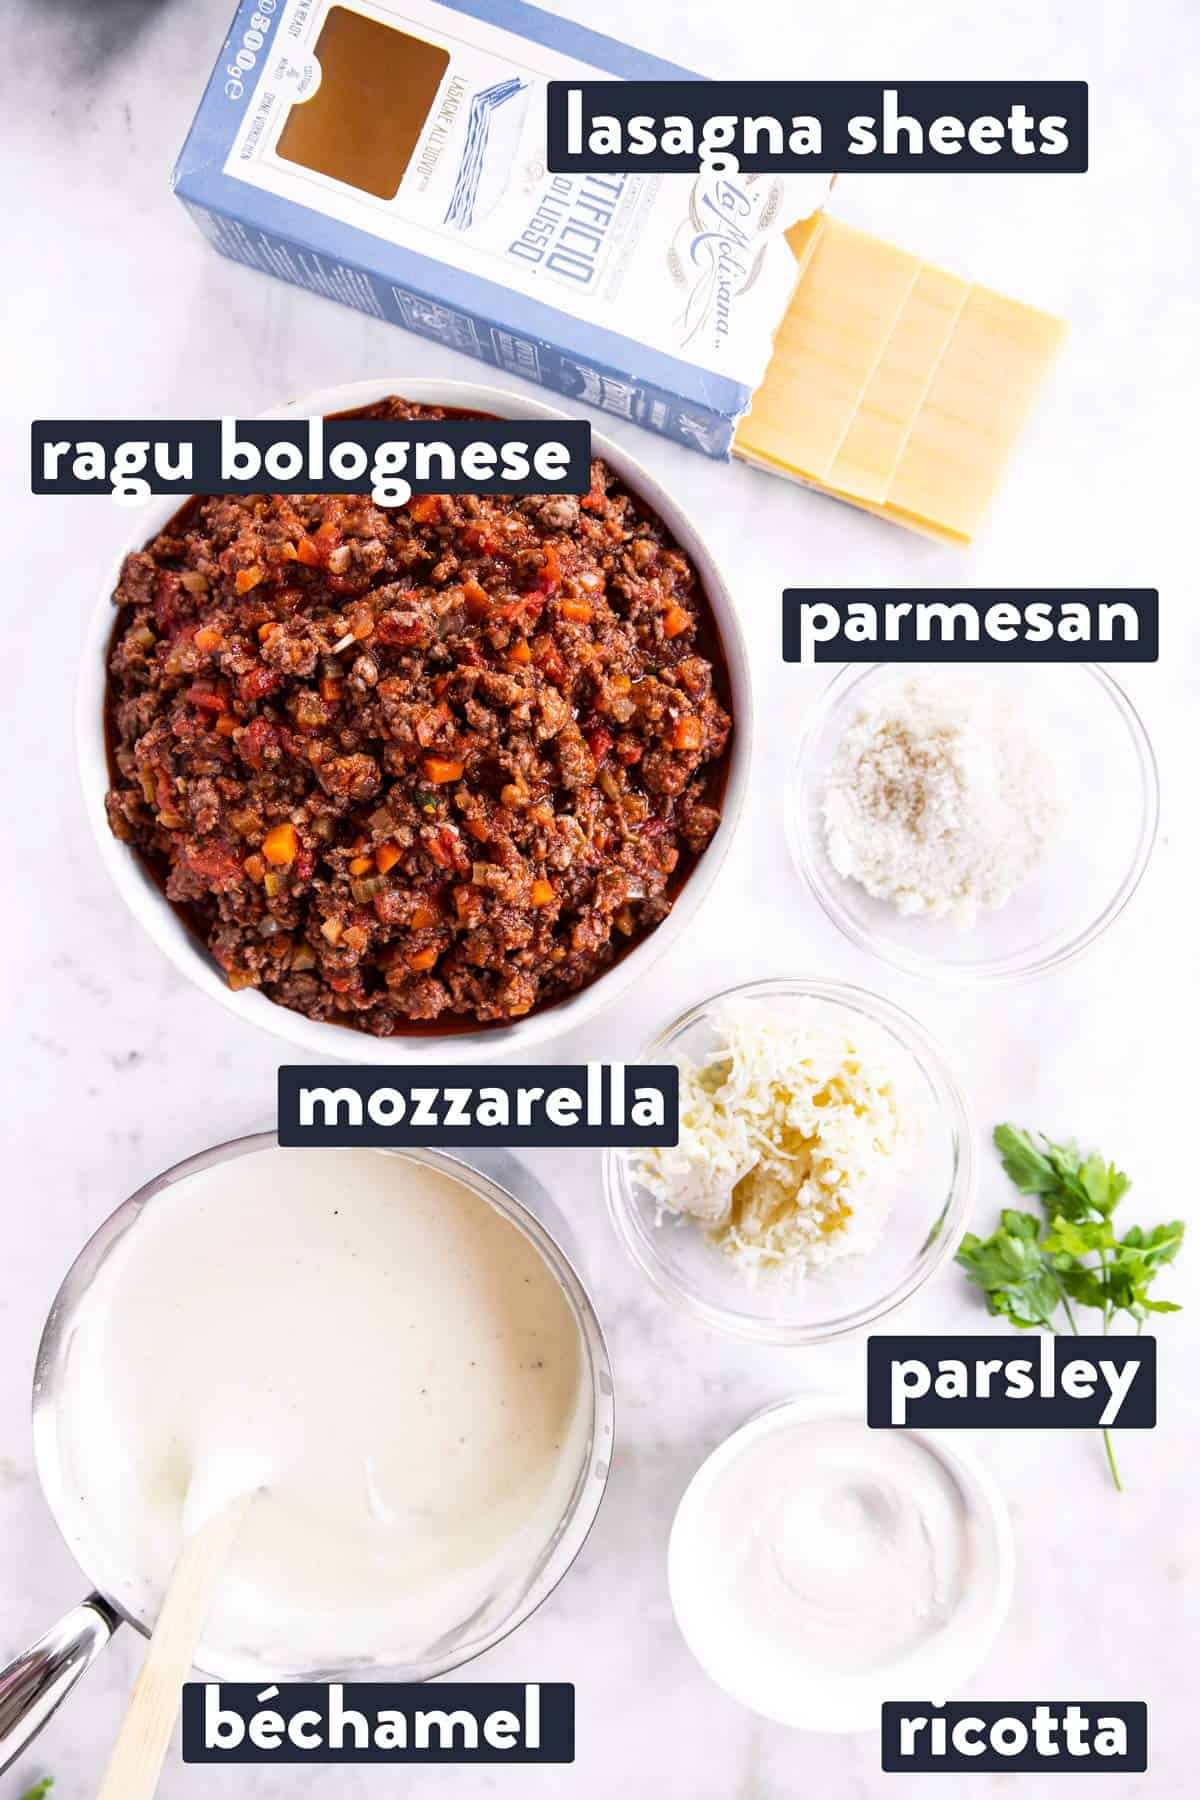 ingredients for lasagna with text labels